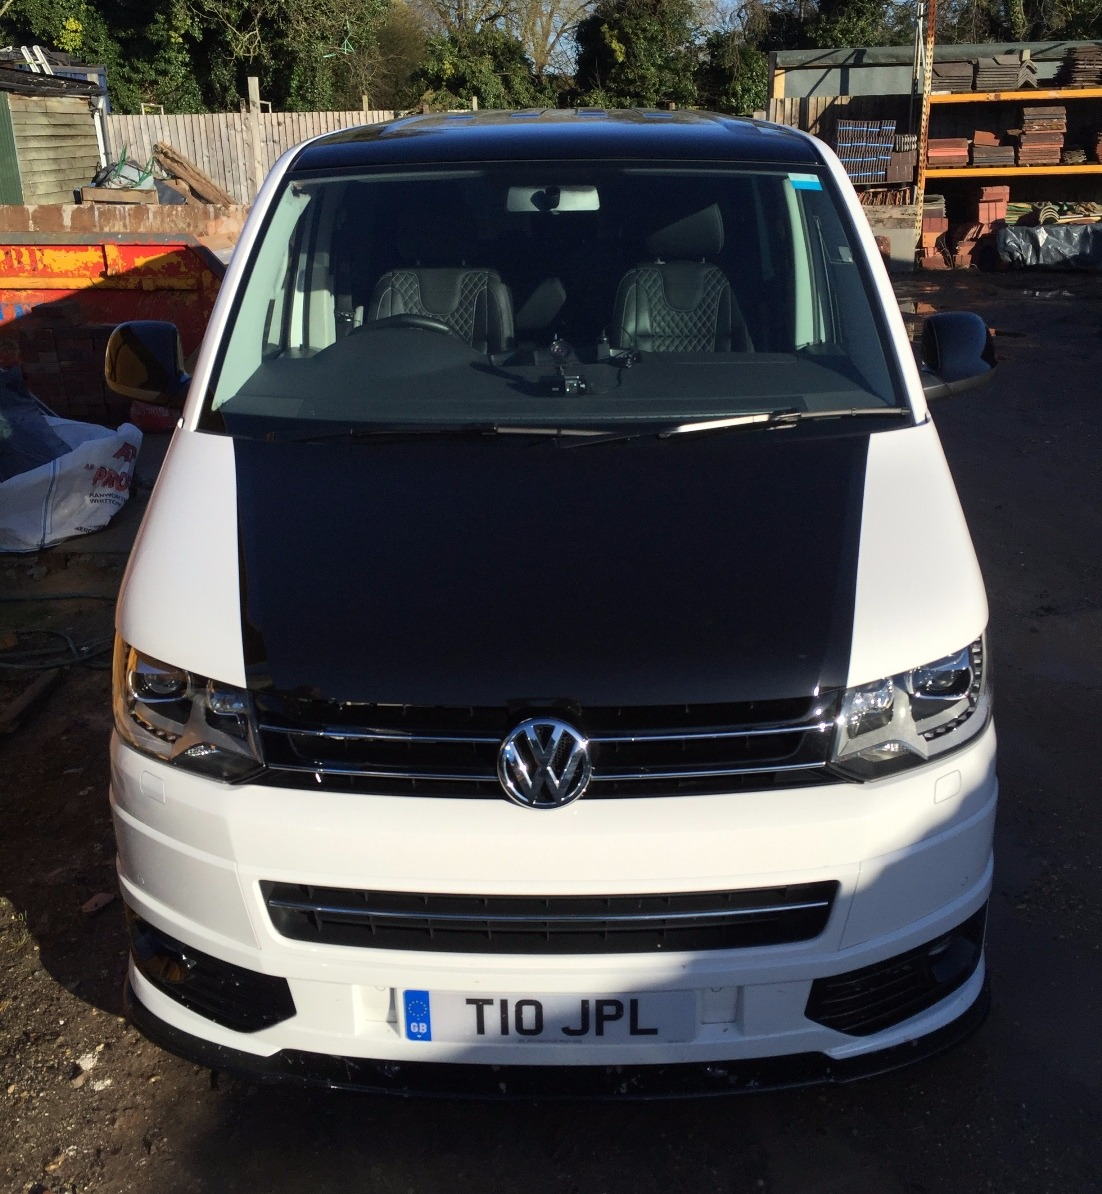 VW Transporter graphics